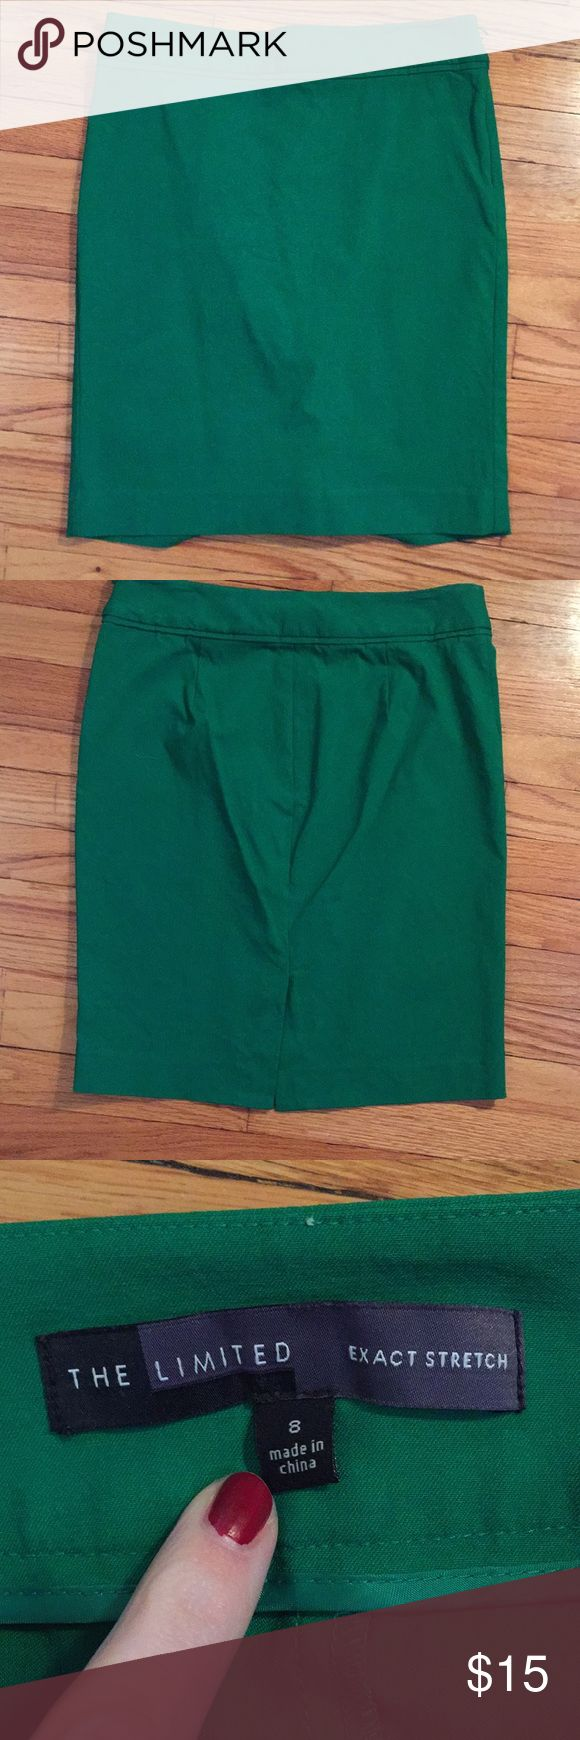 "The Limited Exact Stretch green pencil skirt Green pencil skirt from the Limited. Only worn 1-2 times. Has been machine washed and never put through the dryer. Measures 15.5"" across the top. 17.5"" at the hips, and 20.5"" top to bottom. This has a very fitted style. I also have the identical skirt in black listed in my closet!  Questions, bundles, and reasonable offers welcomed! The Limited Skirts Pencil"